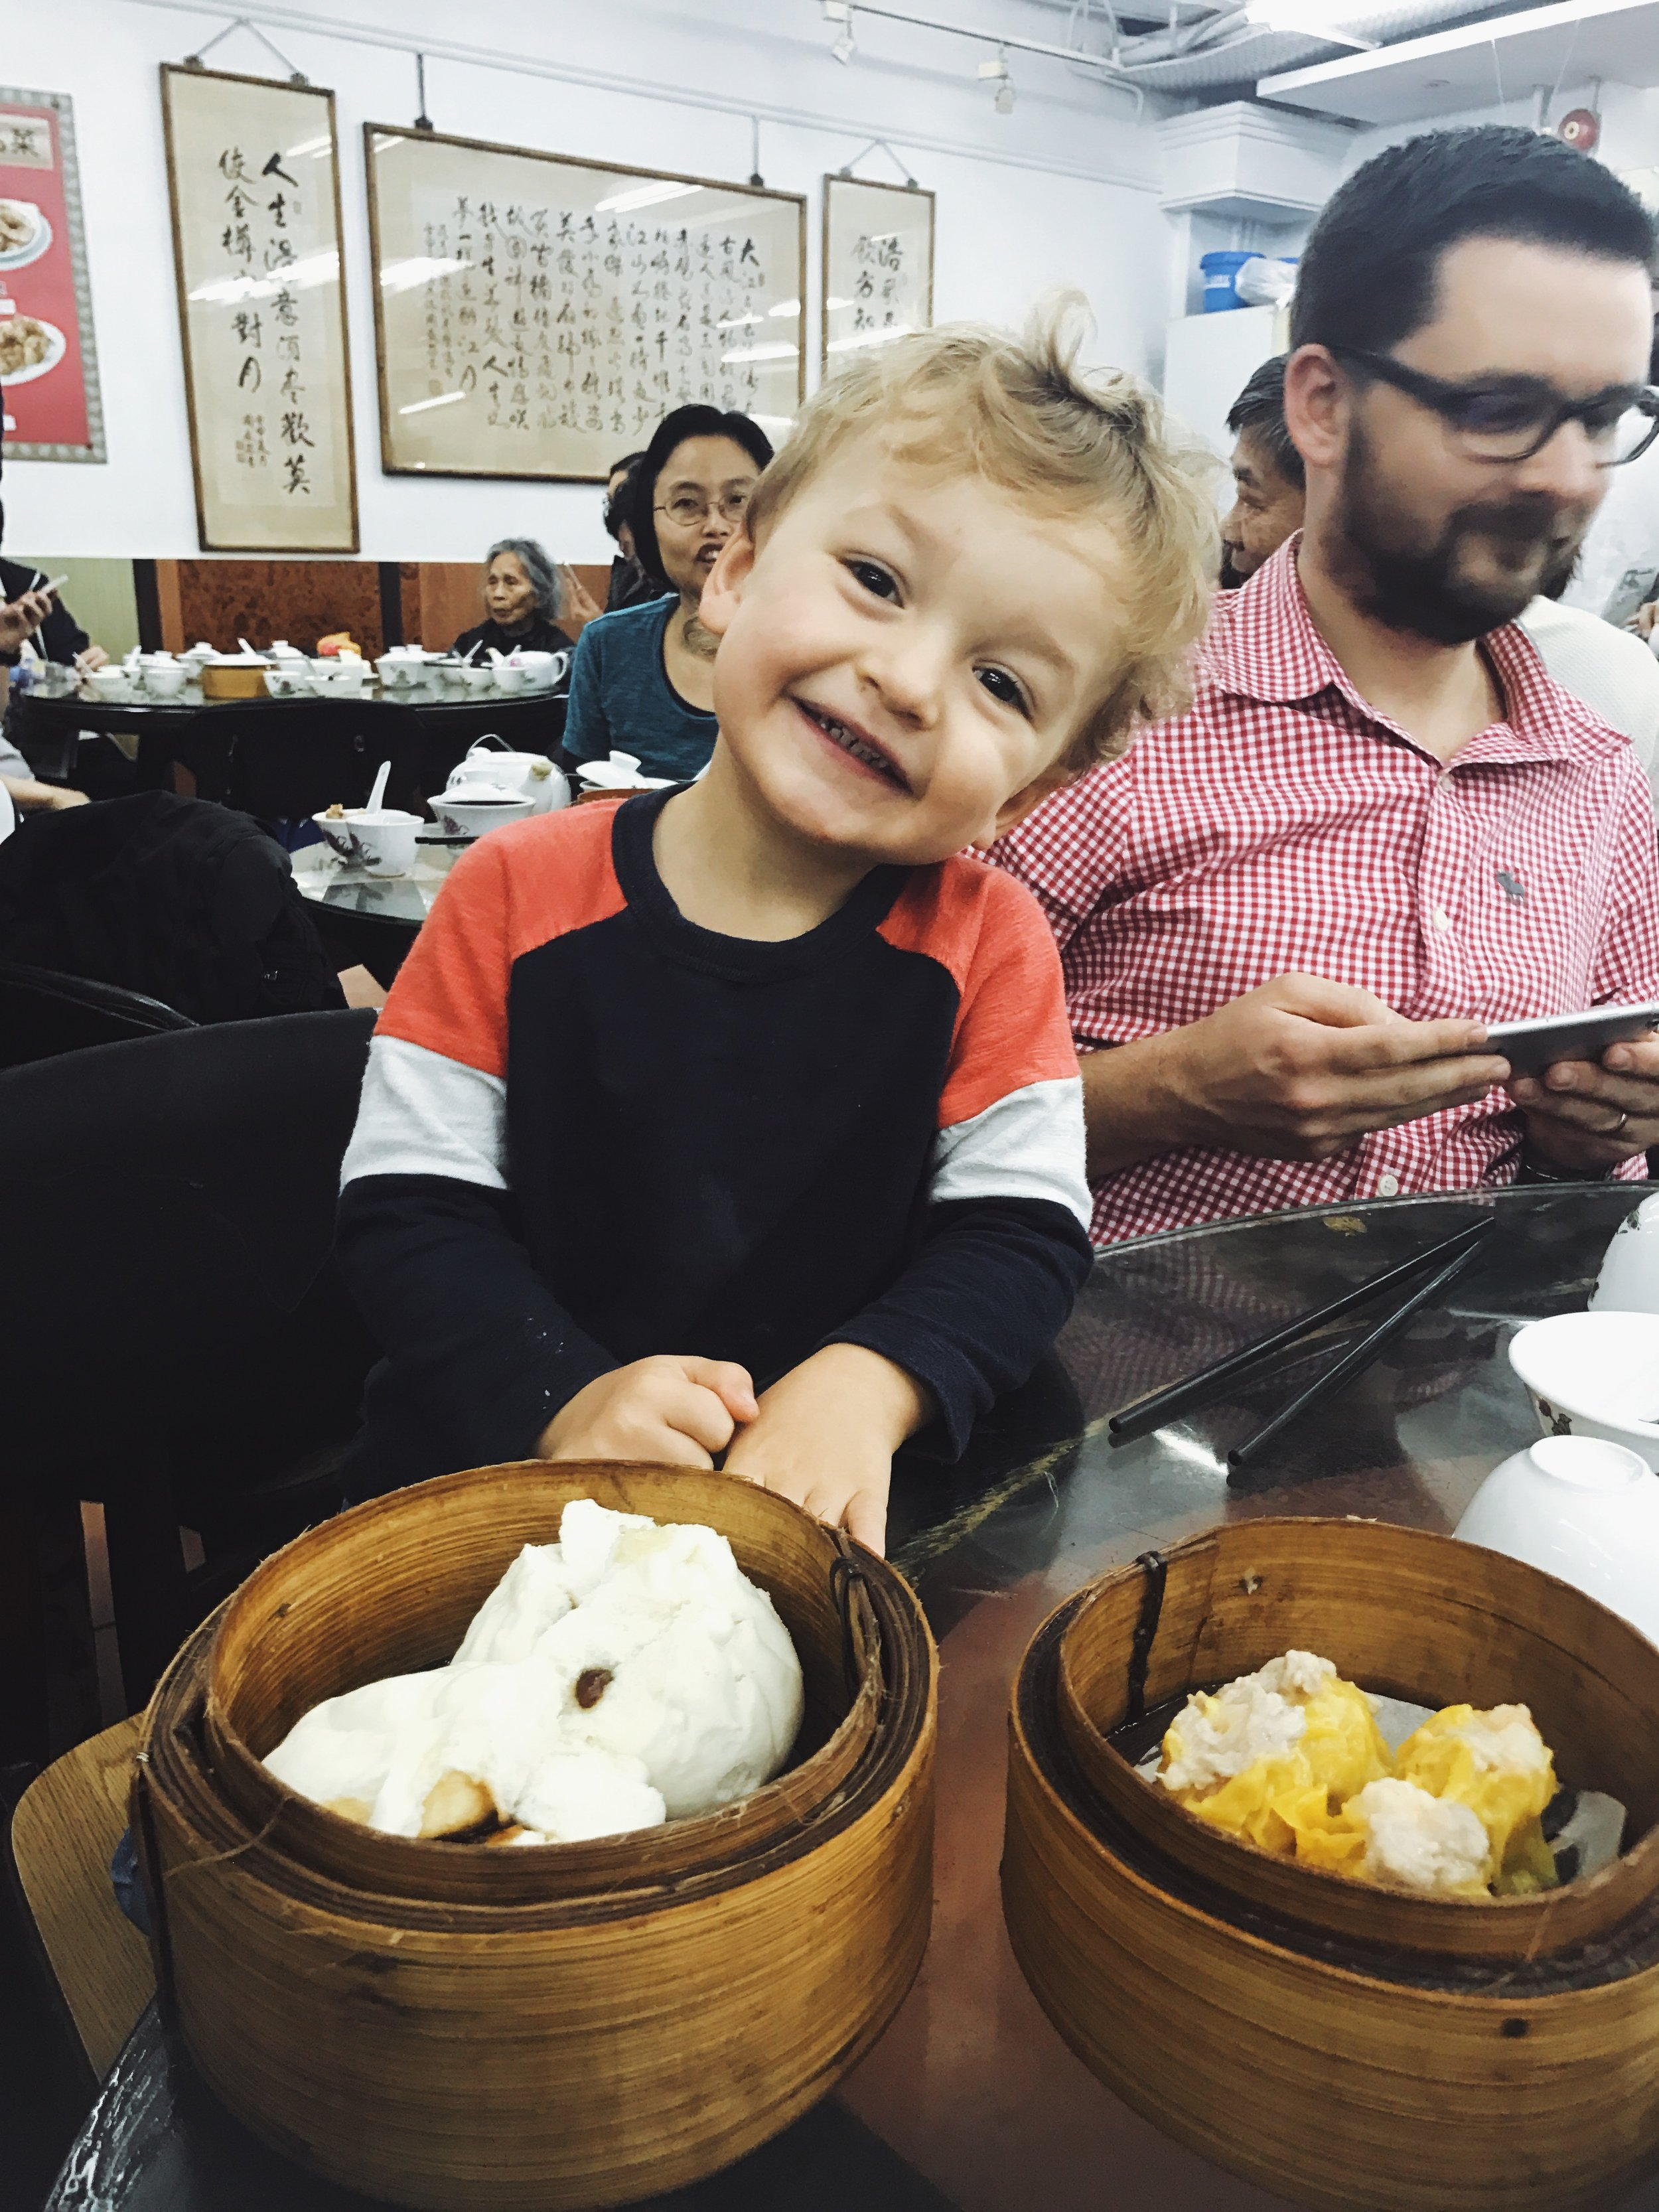 Our little professional dim sum eater from Australia. Yes, kids are welcome on the tour - the more the merrier! :)